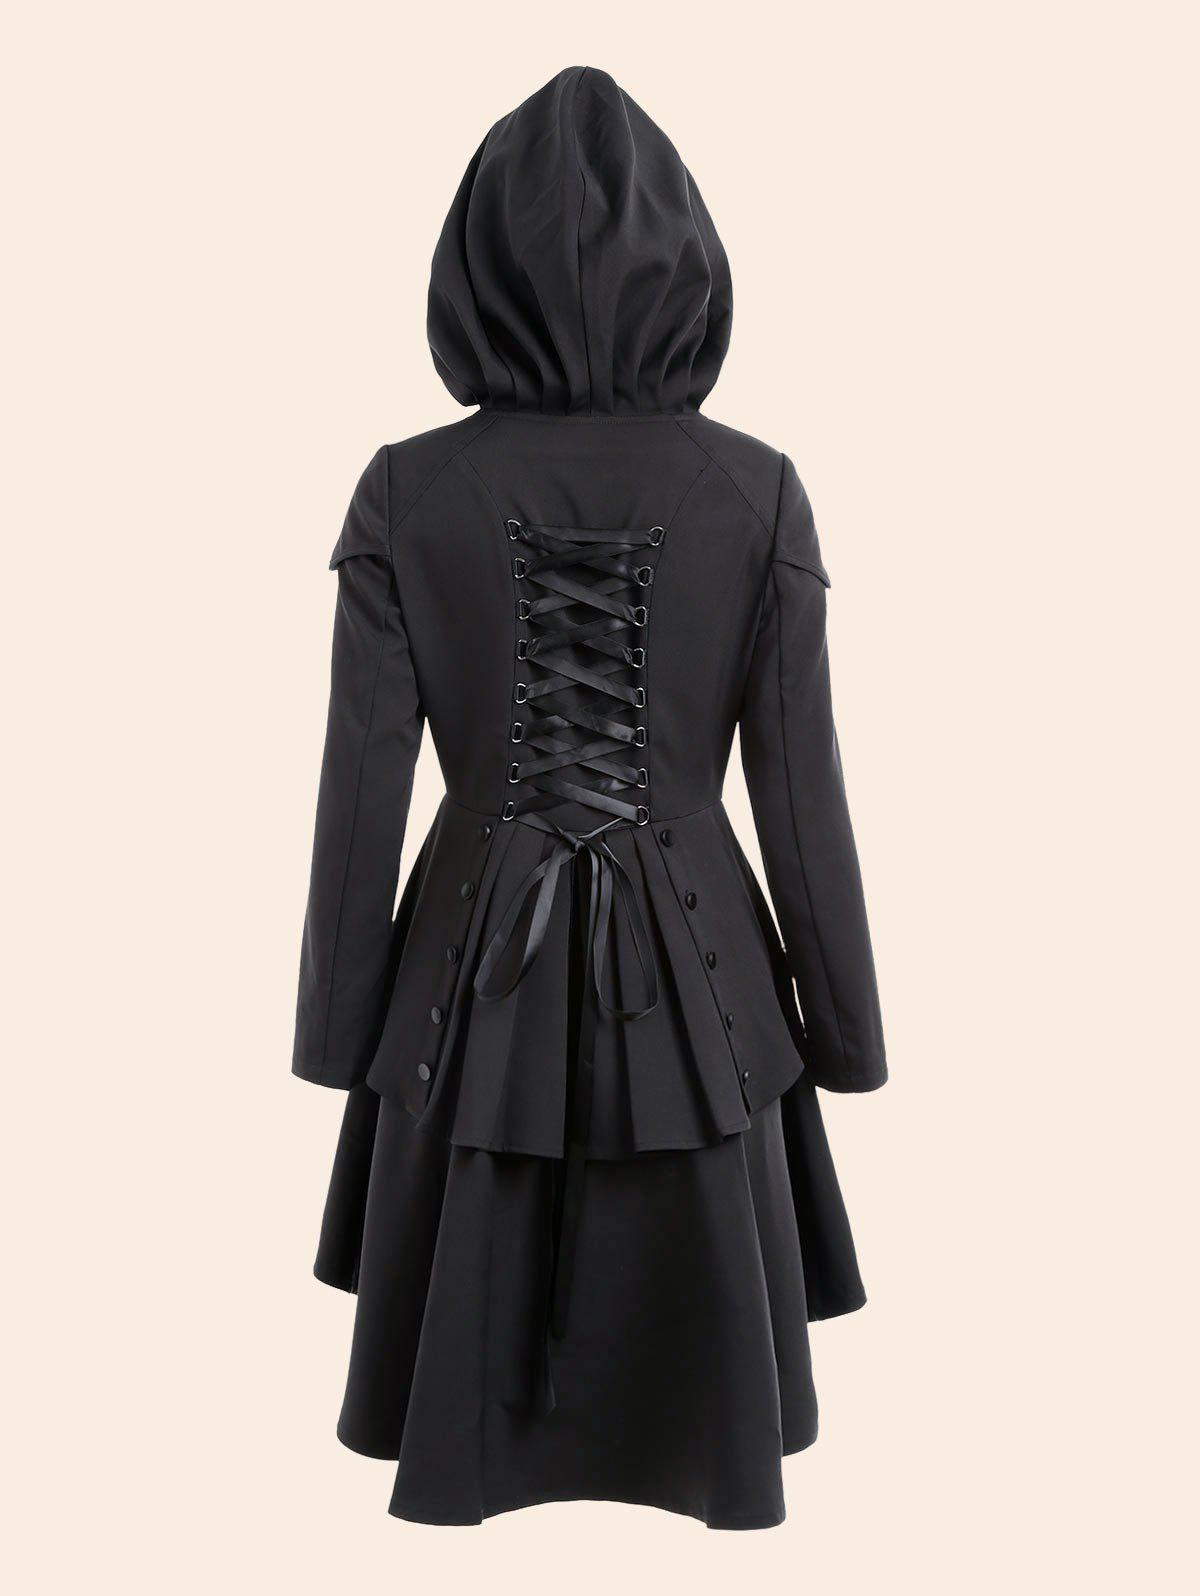 Lace Up High Low Plus Size Hooded CoatWOMEN<br><br>Size: 2XL; Color: BLACK; Clothes Type: Others; Material: Polyester; Type: High Waist; Shirt Length: Regular; Sleeve Length: Full; Collar: Hooded; Closure Type: Single Breasted; Pattern Type: Solid; Embellishment: Criss-Cross; Style: Gothic; Season: Fall,Spring; With Belt: No; Weight: 0.7500kg; Package Contents: 1 x Coat;